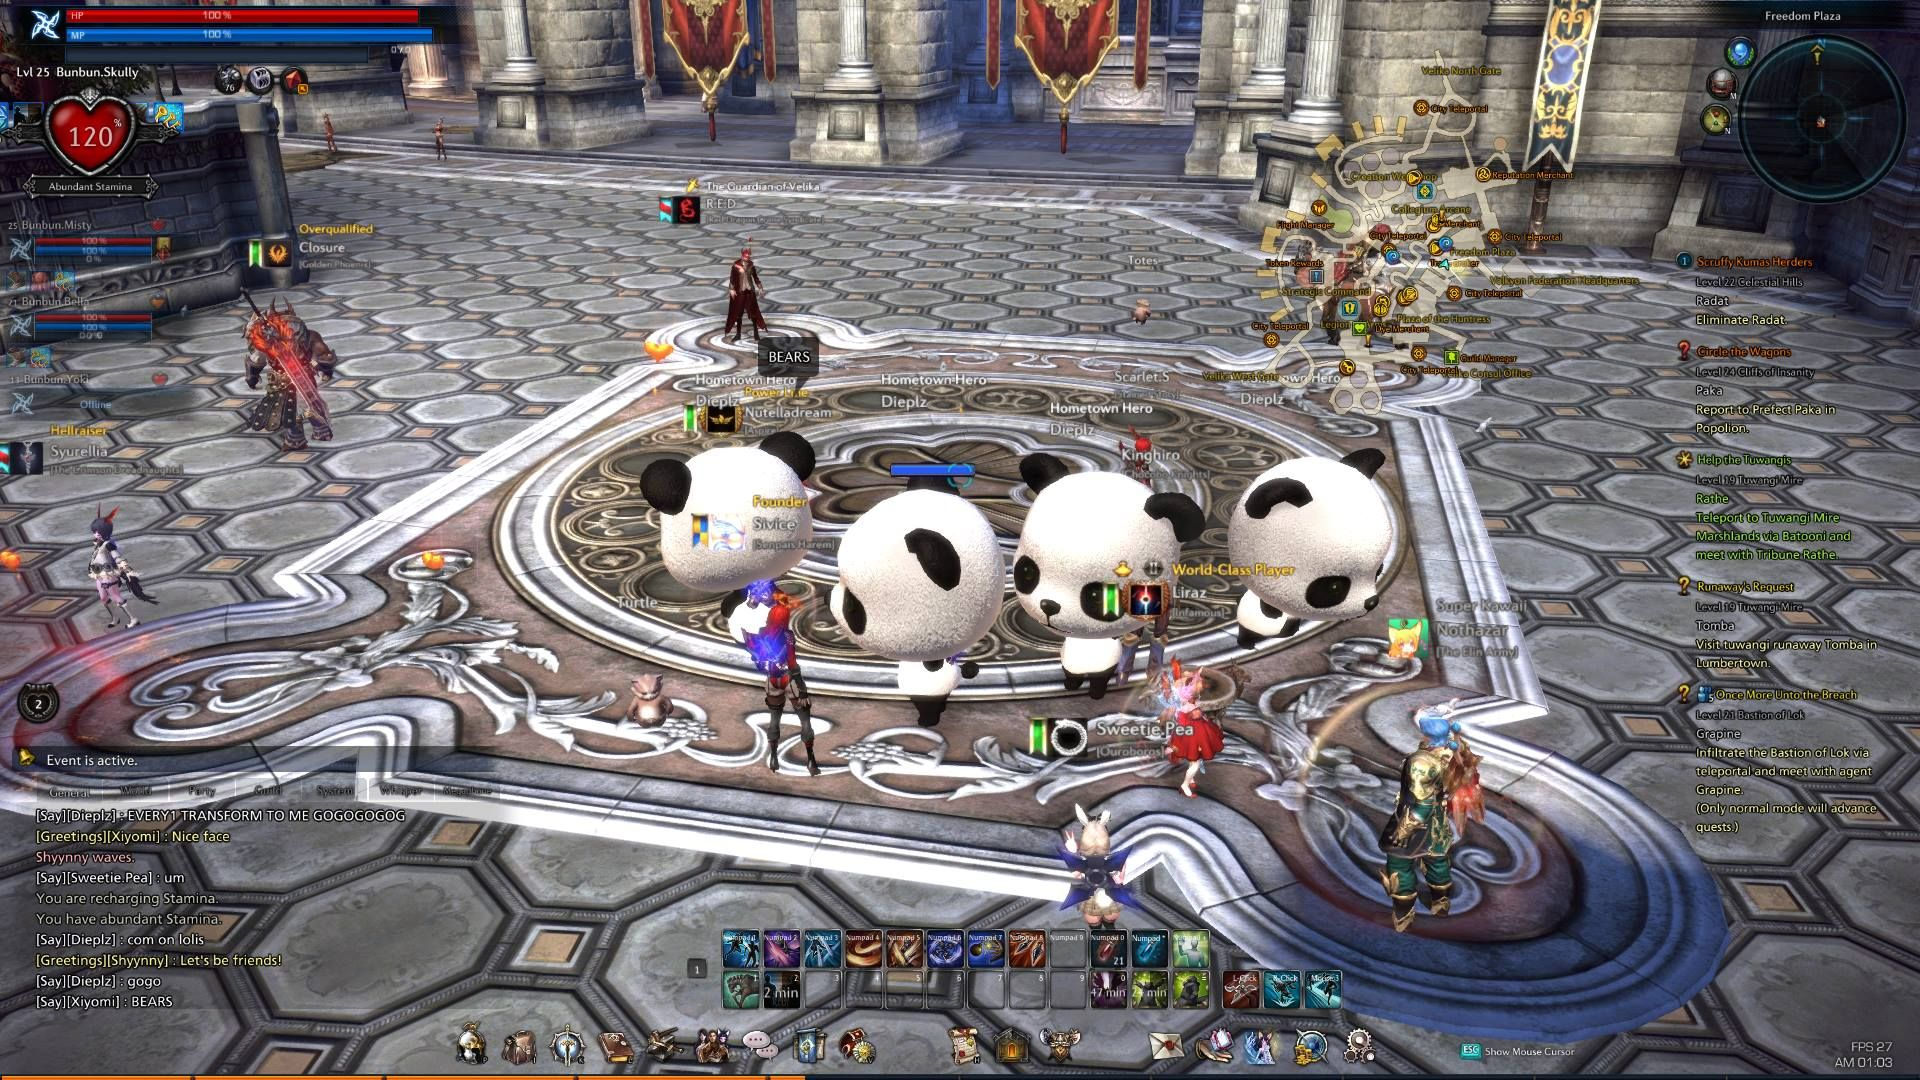 Friends to how tera teleport to This game